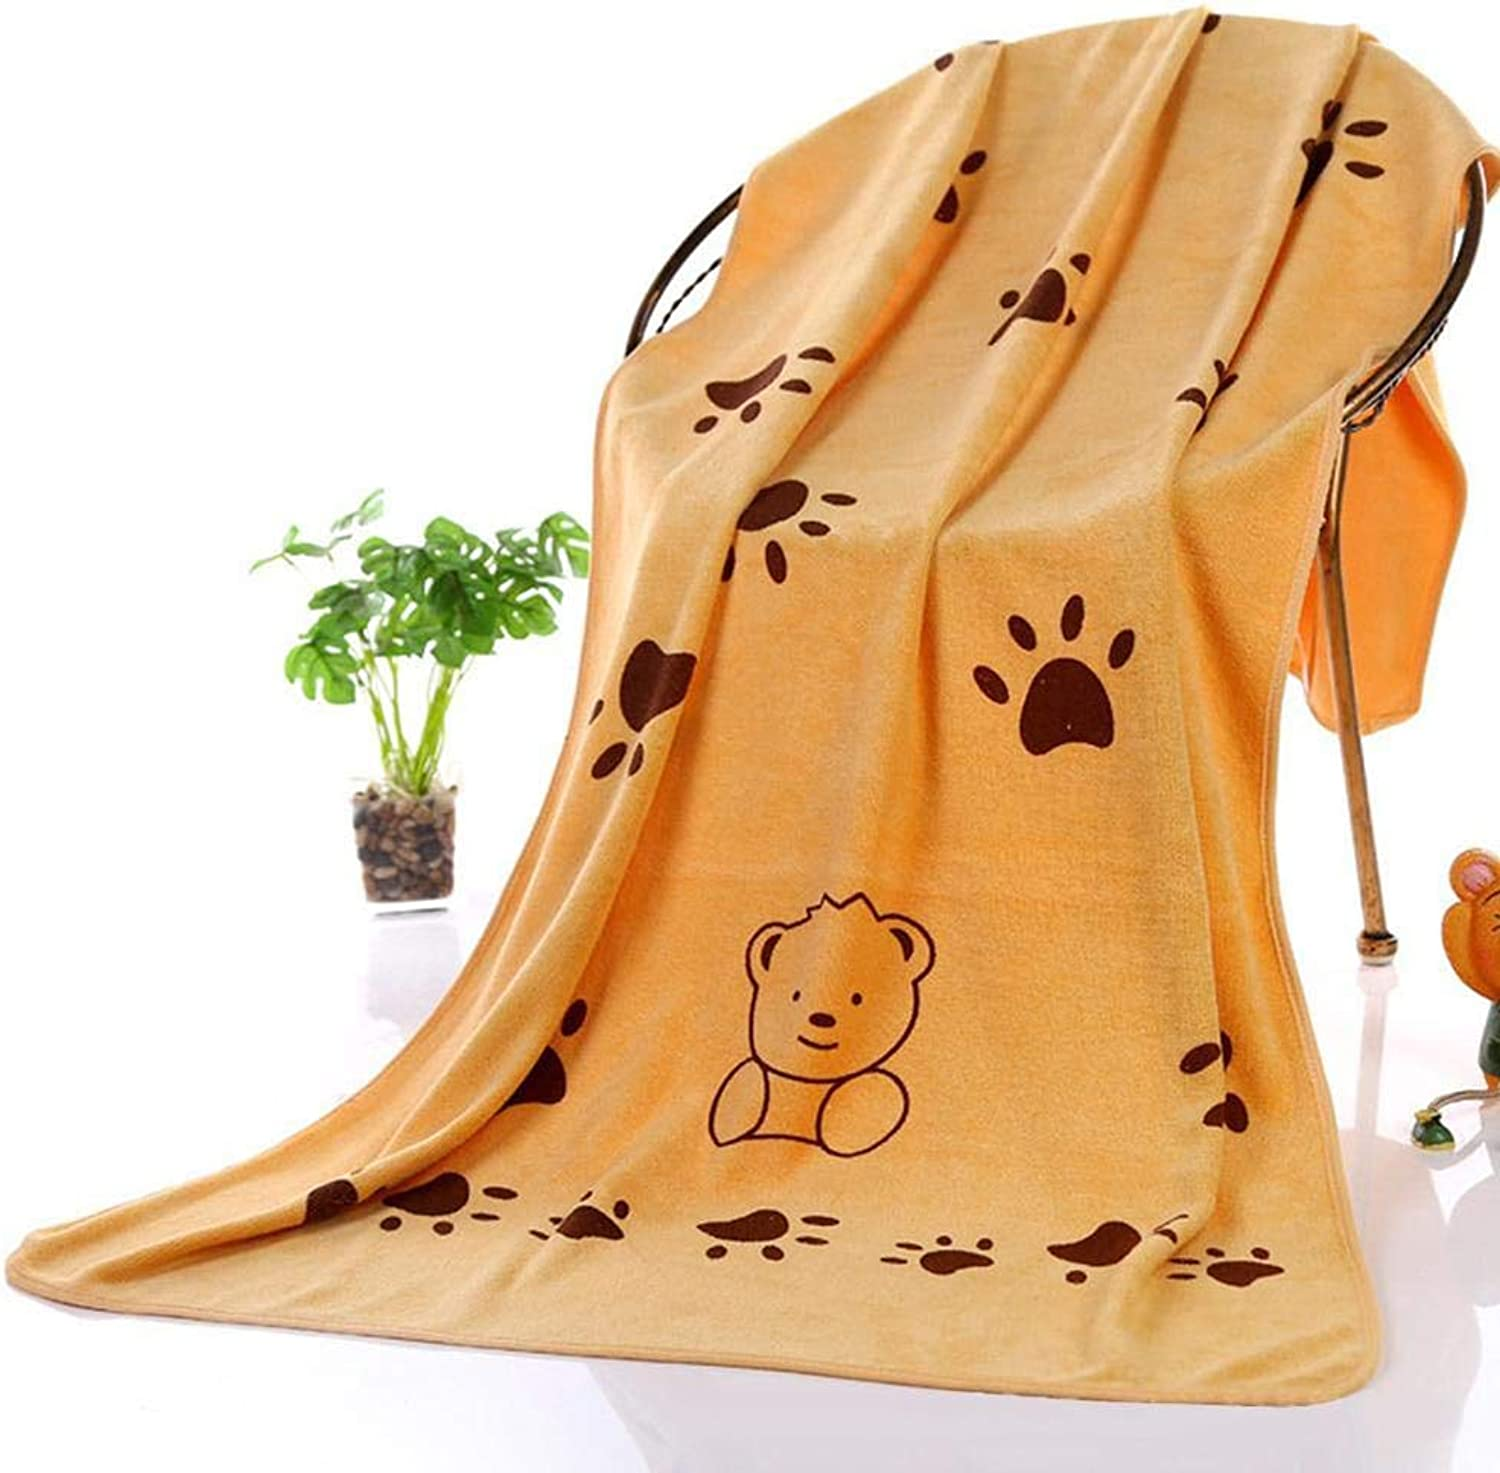 Dog Towels Personalised, Dog Towels Microfiber, It Features Good Water Absorption. It Will Not Fade and Lint, Processed with Brushing, It Touches Soft